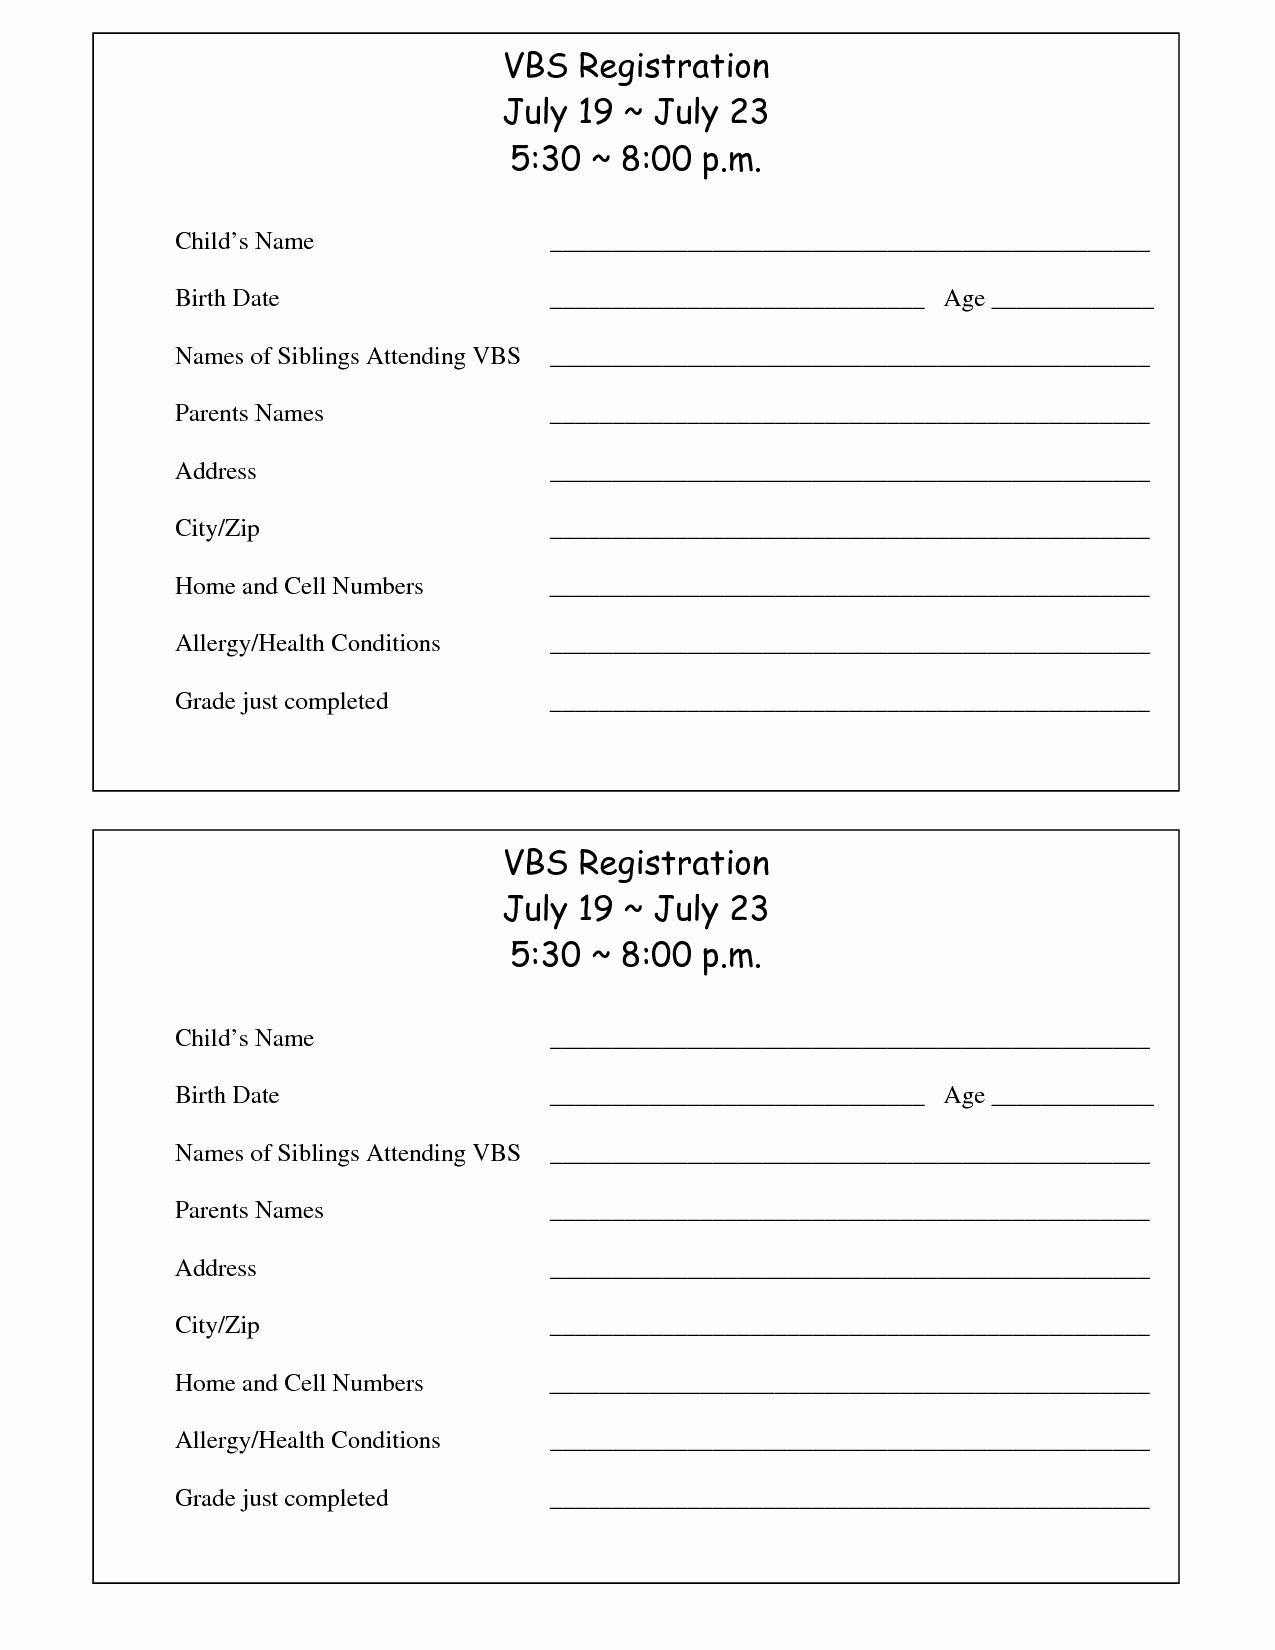 School Registration form Template Best Of Printable Vbs Registration form Template